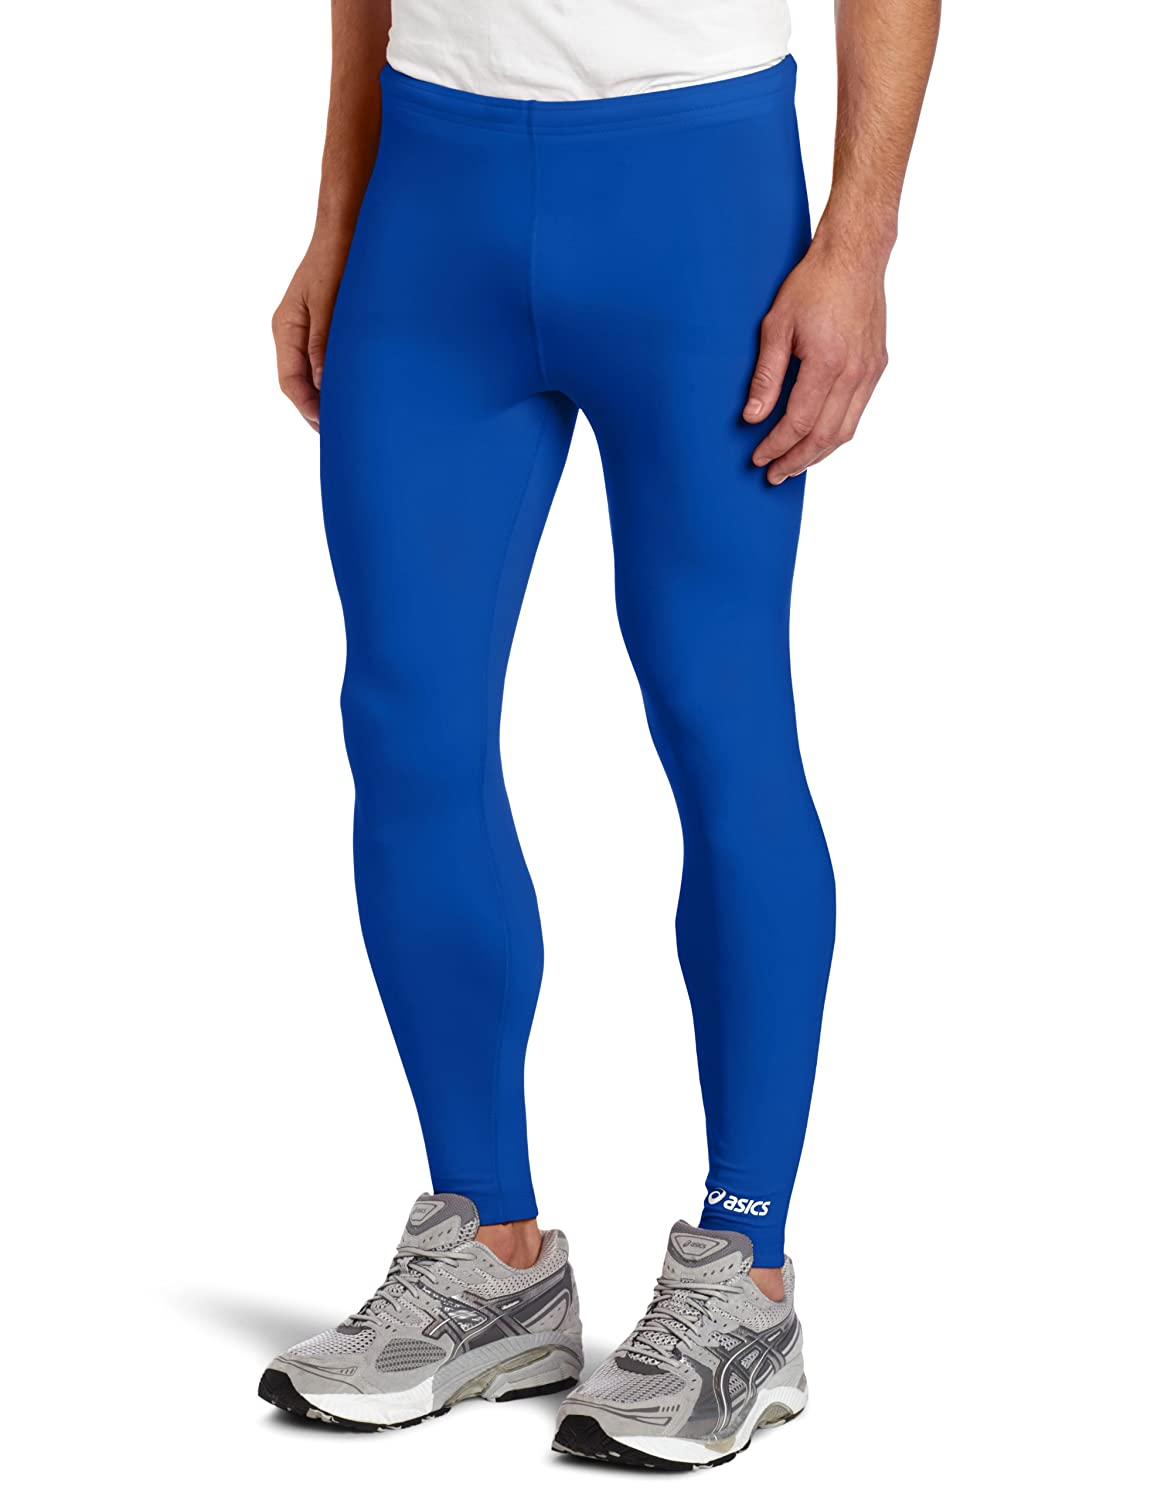 Amazon.com : Asics Men's Team Medley Tights : Mens Leggings Royal ...